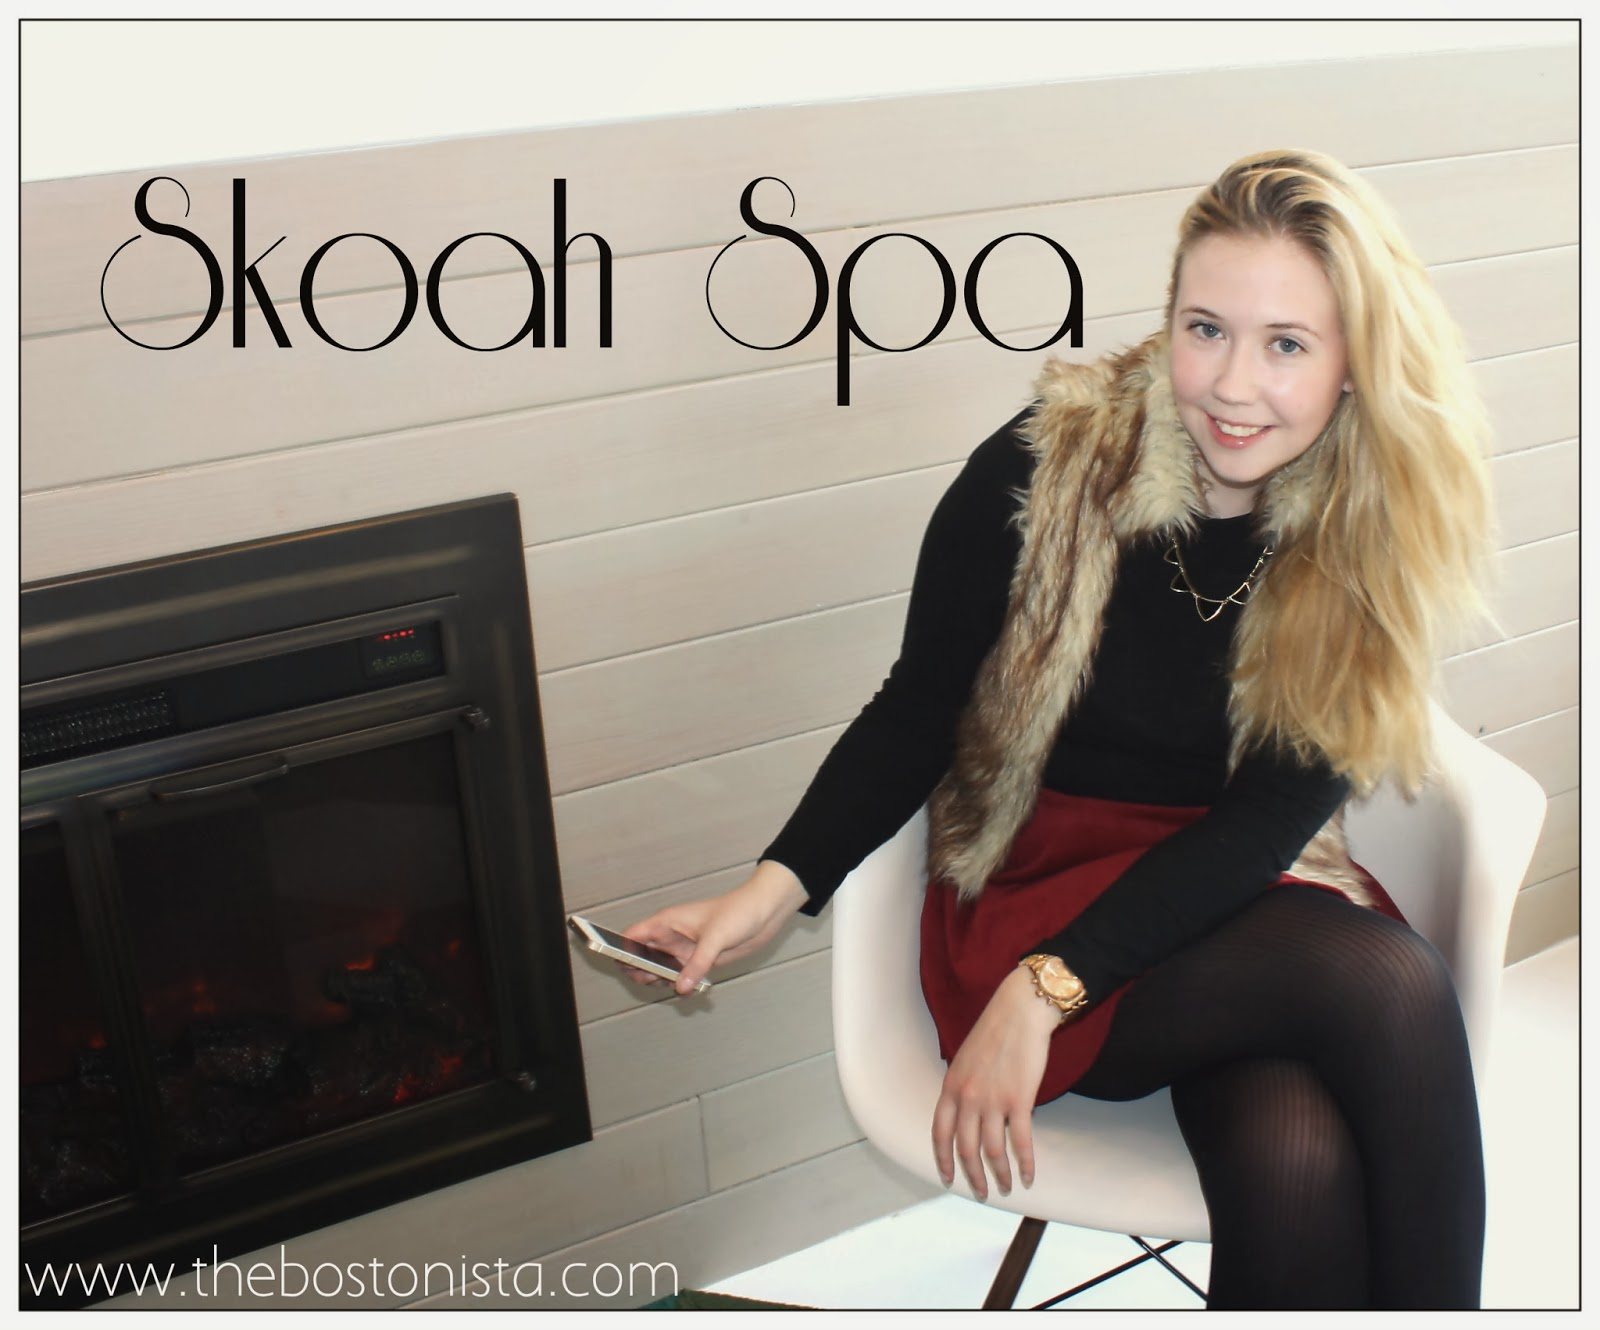 Boston's Best Facial, How to get glowing skin, Skoah Chestnut Hill Spa, Facials, Skincare, Skoah Skincare, Reviews, Boston Beauty Blogger, Beauty, Boston Fashion Blog